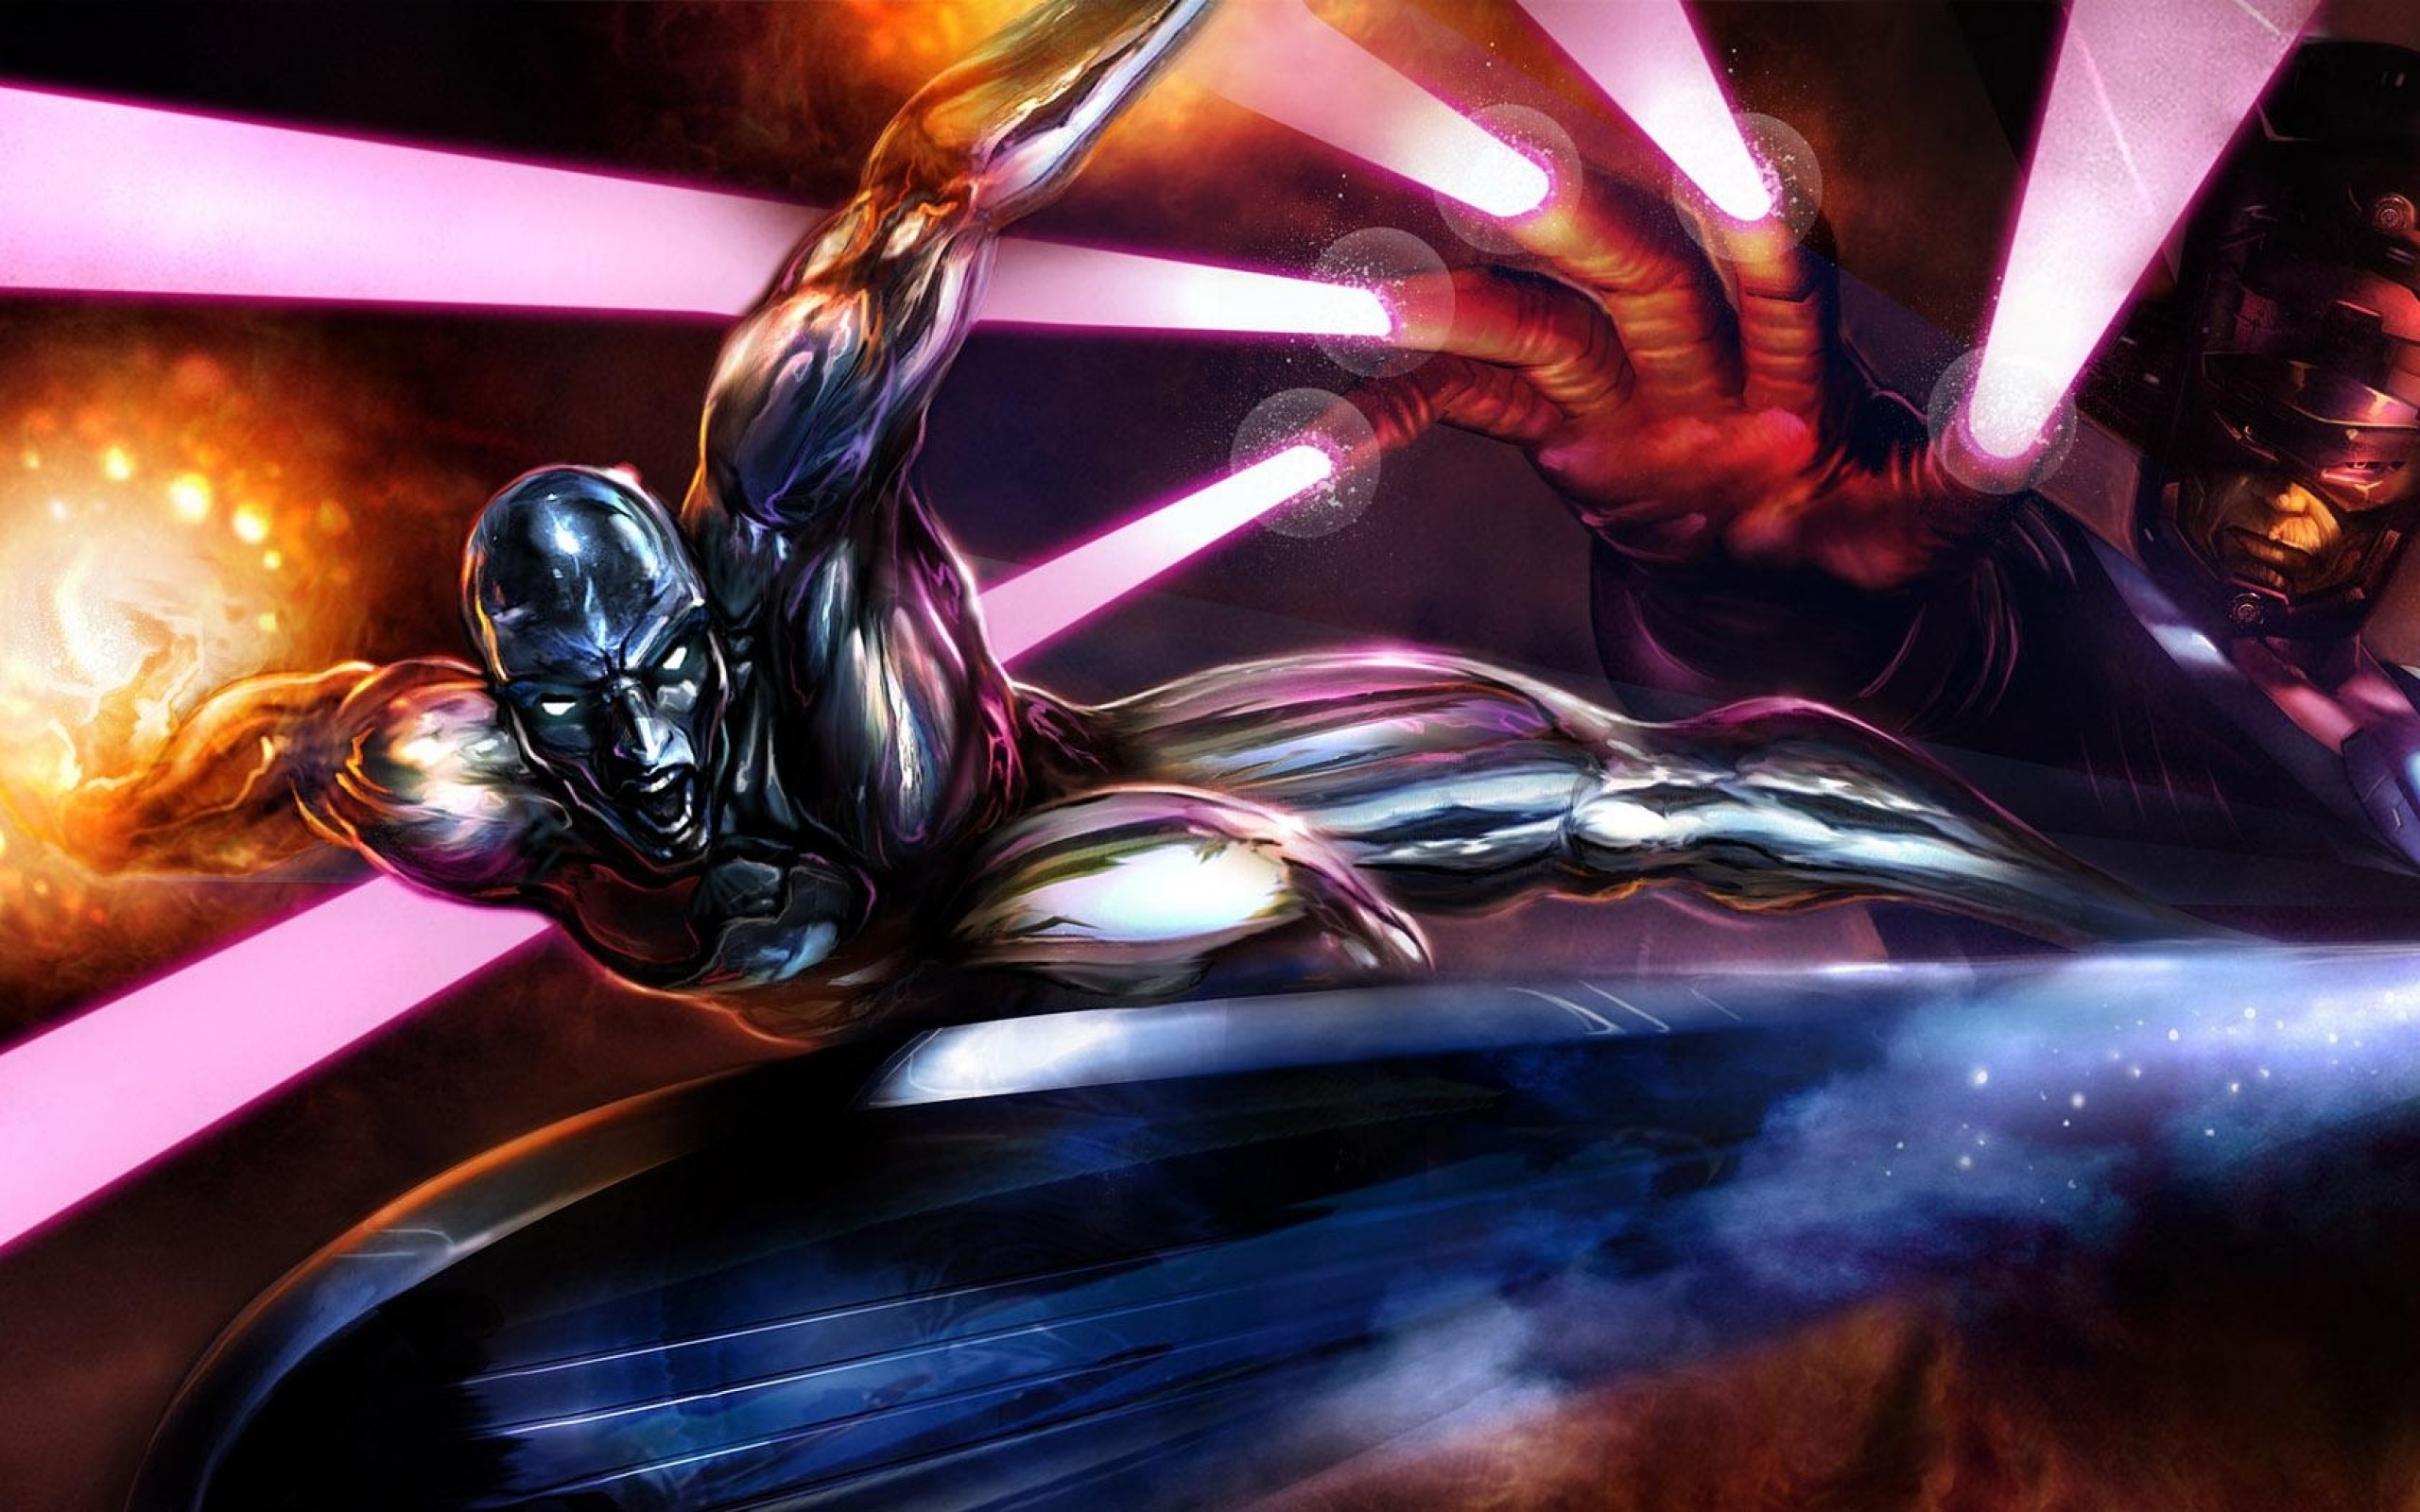 Res: 2560x1600, comics silver surfer marvel comics galactus 1680x1050 wallpaper Art HD